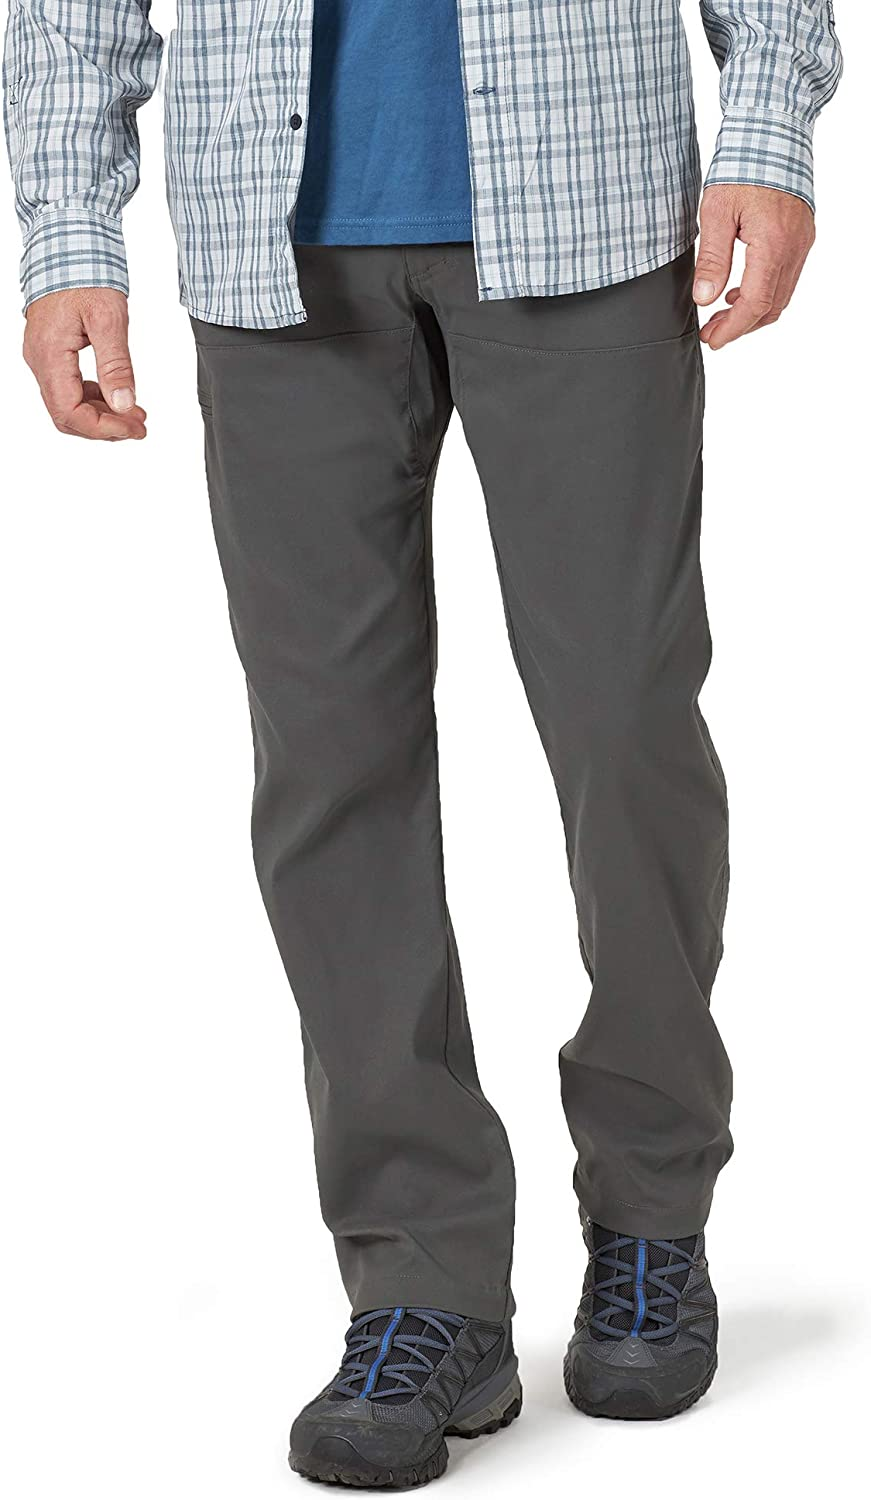 ATG by Wrangler Men's Synthetic Utility Pant: Clothing